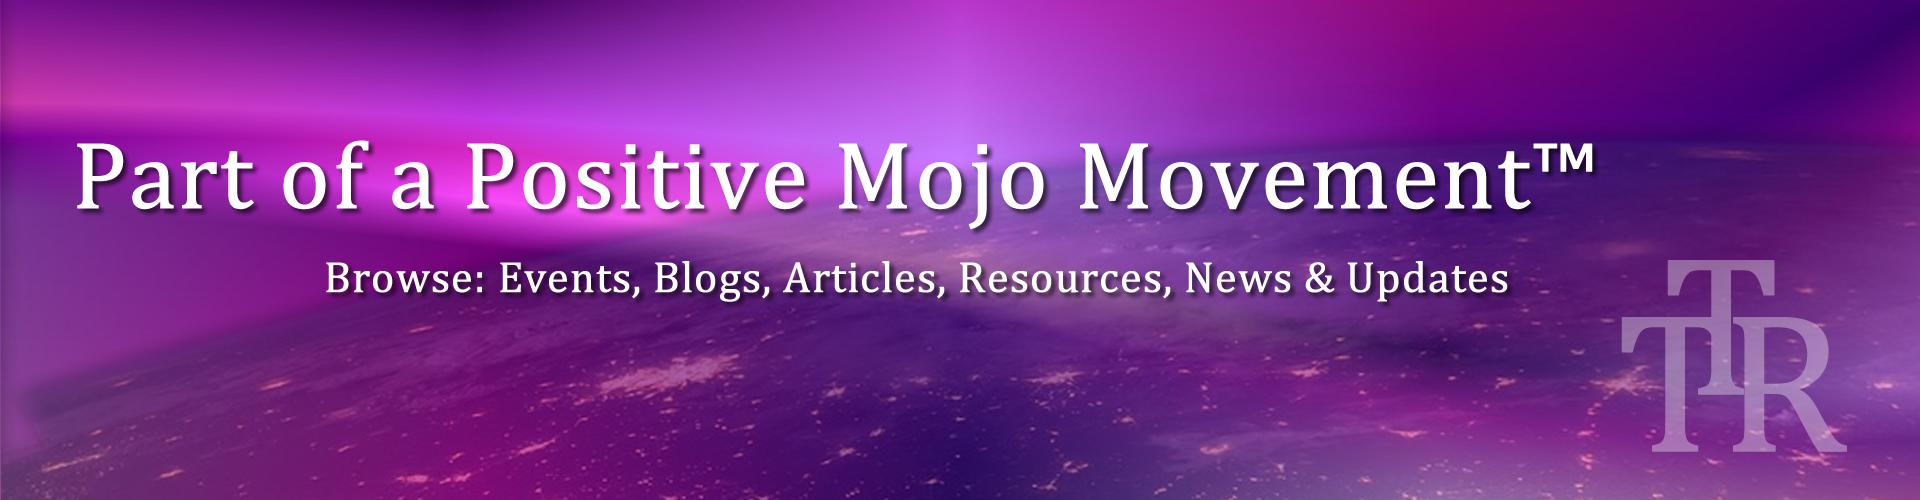 TTR Positive Mojo Movement